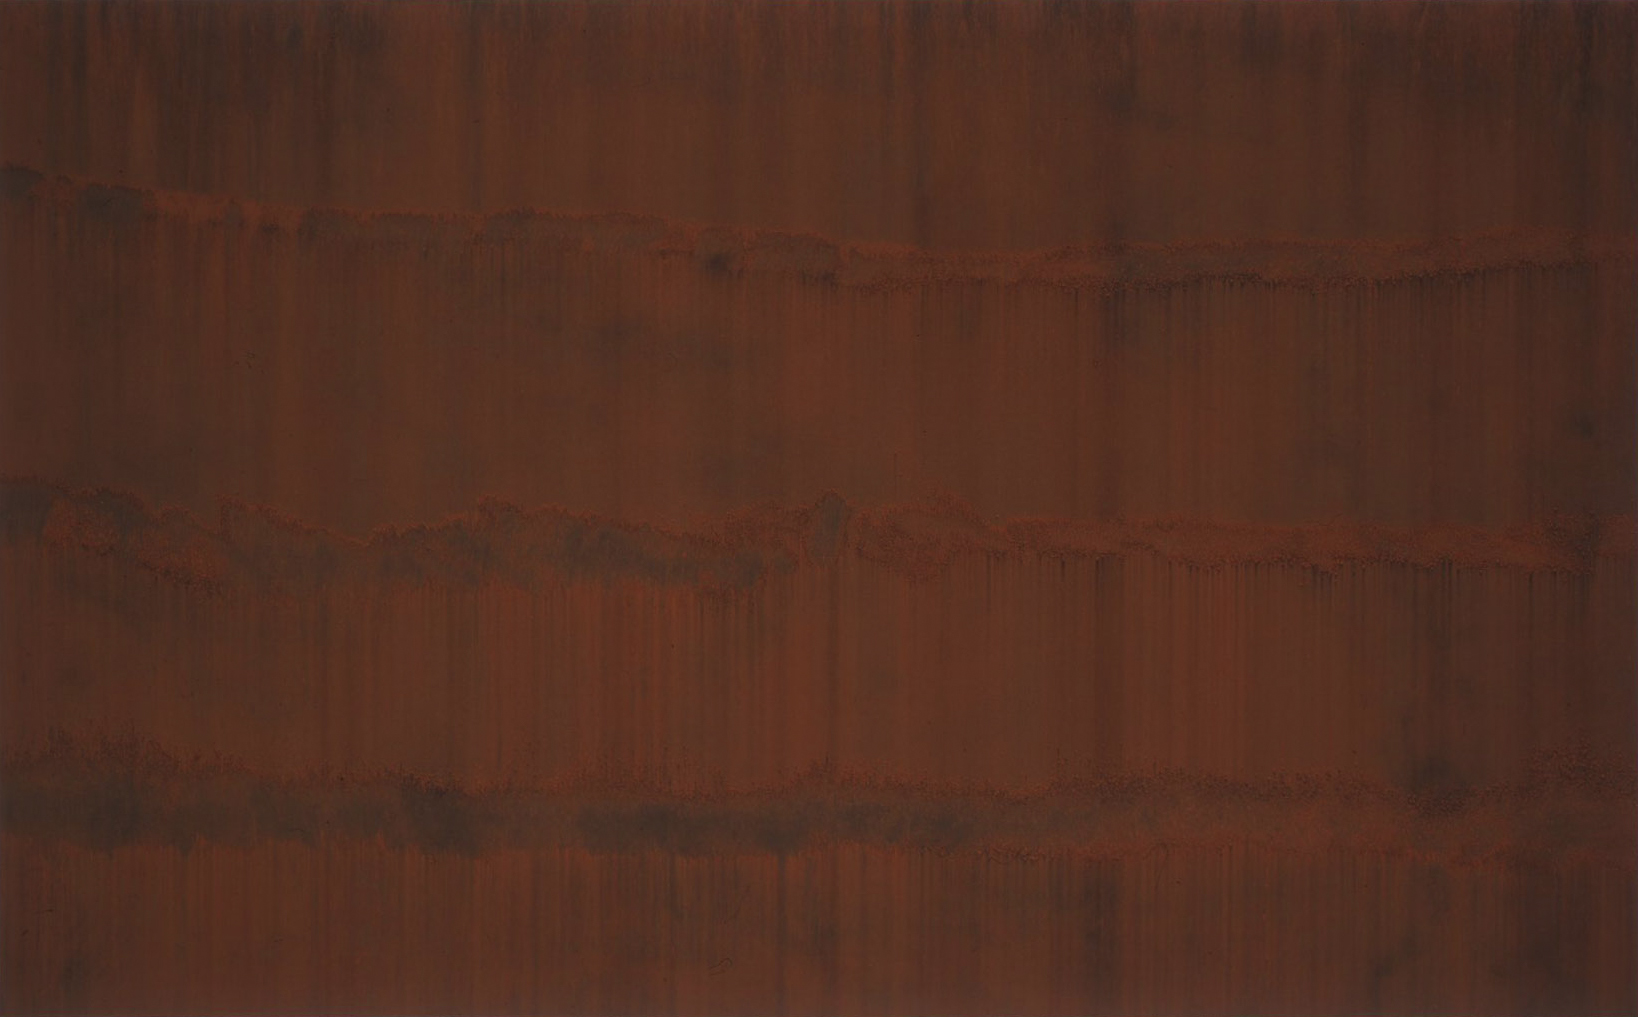 GATHERING (I)  1999  burnt Sienna on carbon deposit  112.0 x 164.0 cm   (private collection UK)